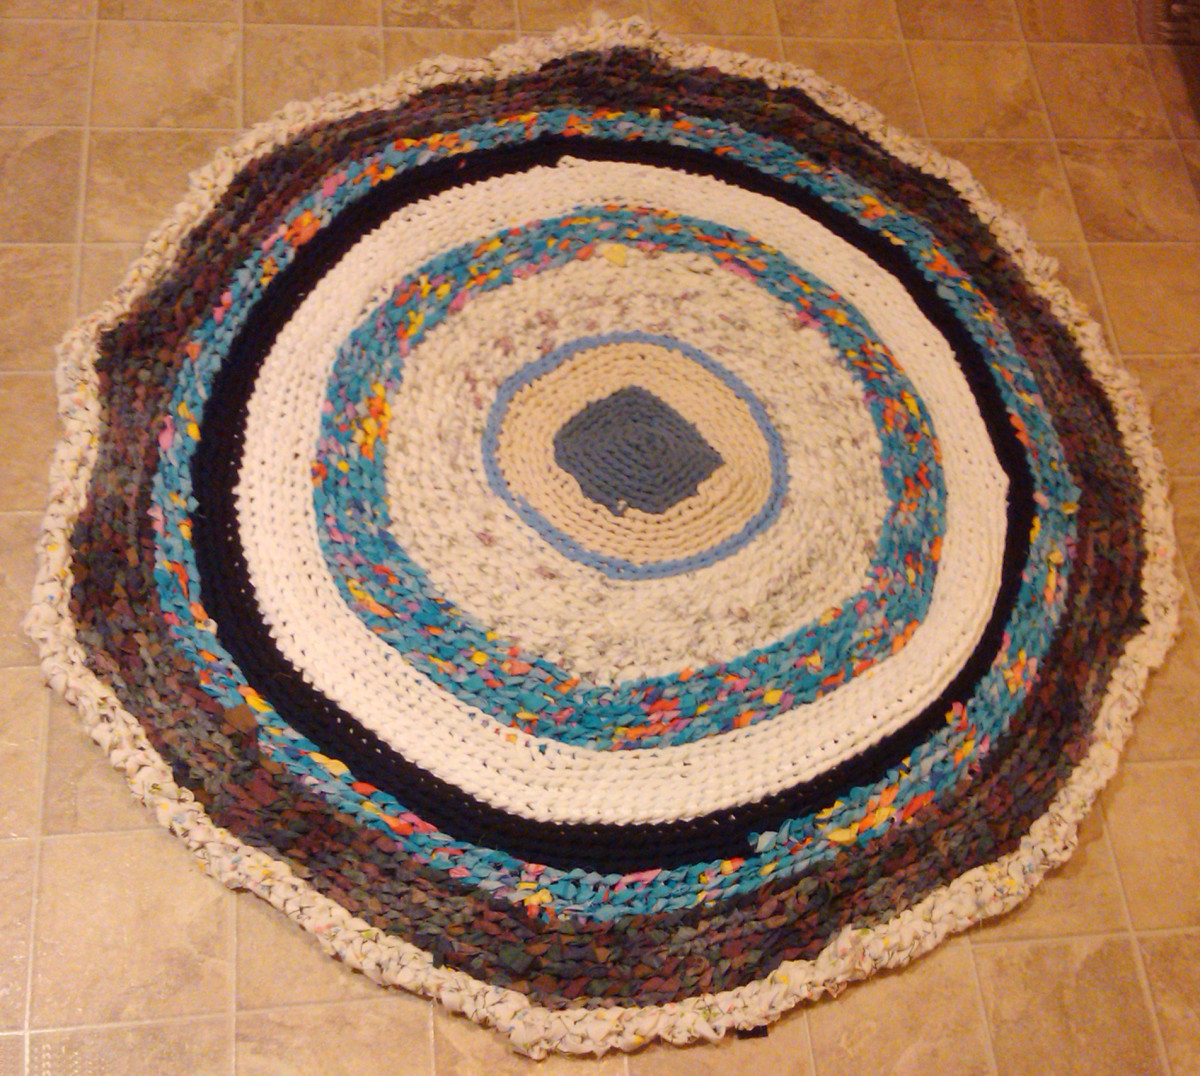 How To Make A Rag Area Rug By Creatively Recycling Old